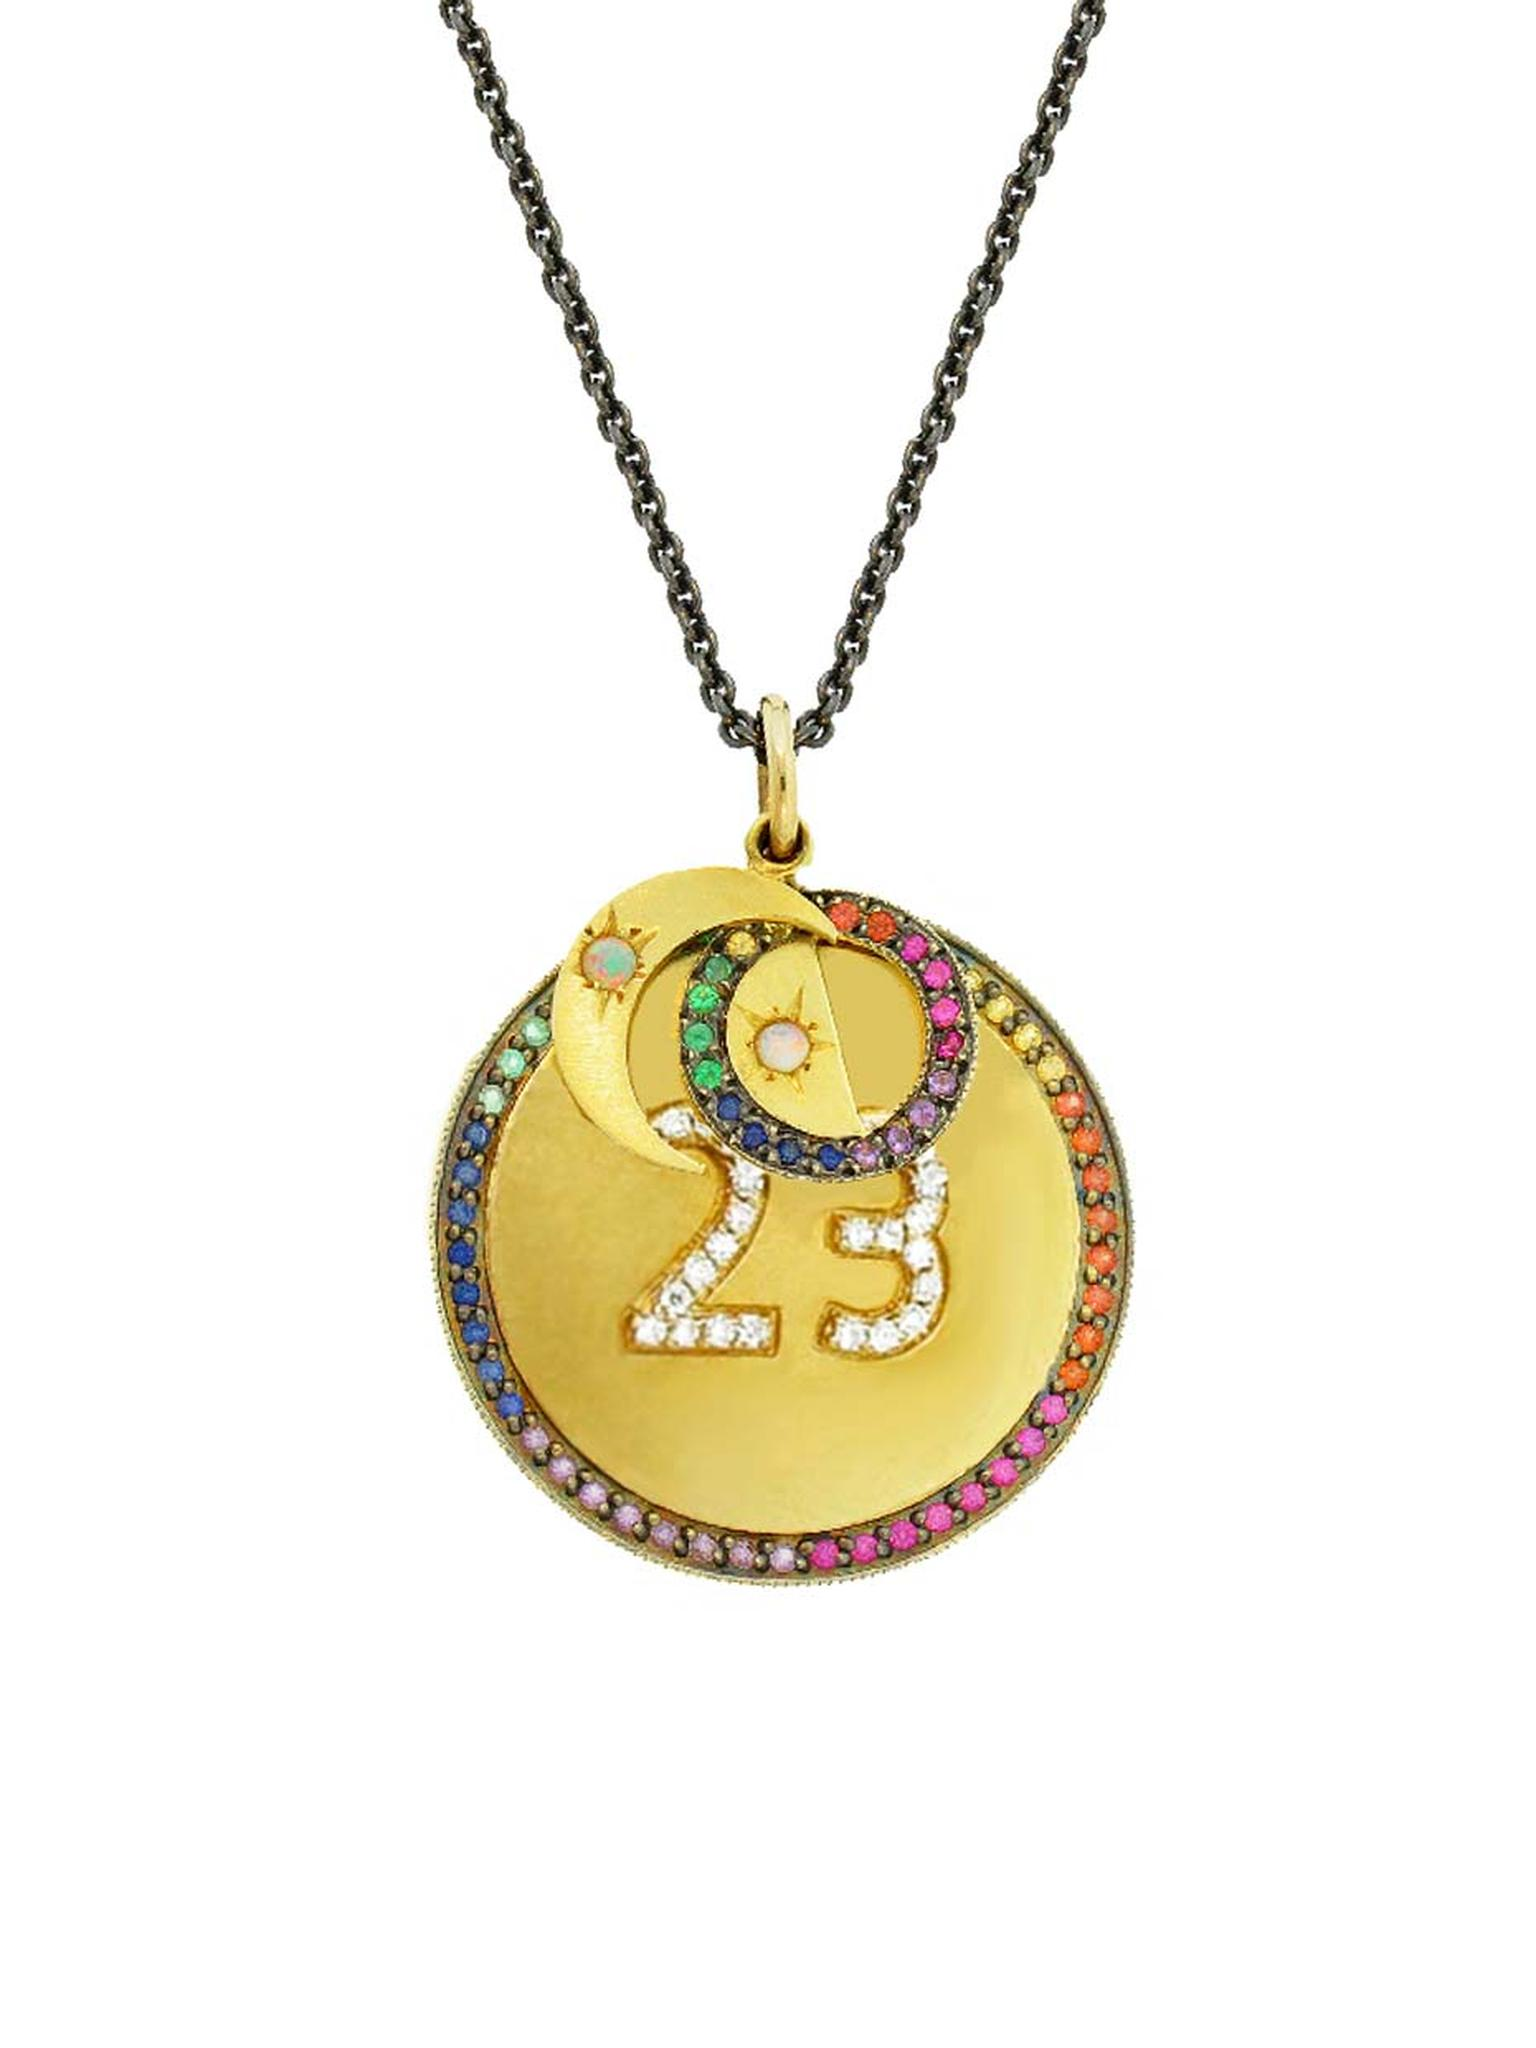 Andrea Fohrman Phases of the Moon necklace allows you to choose your own number, initials and the phase of the Moon under which you were born. Available from Ylang23.